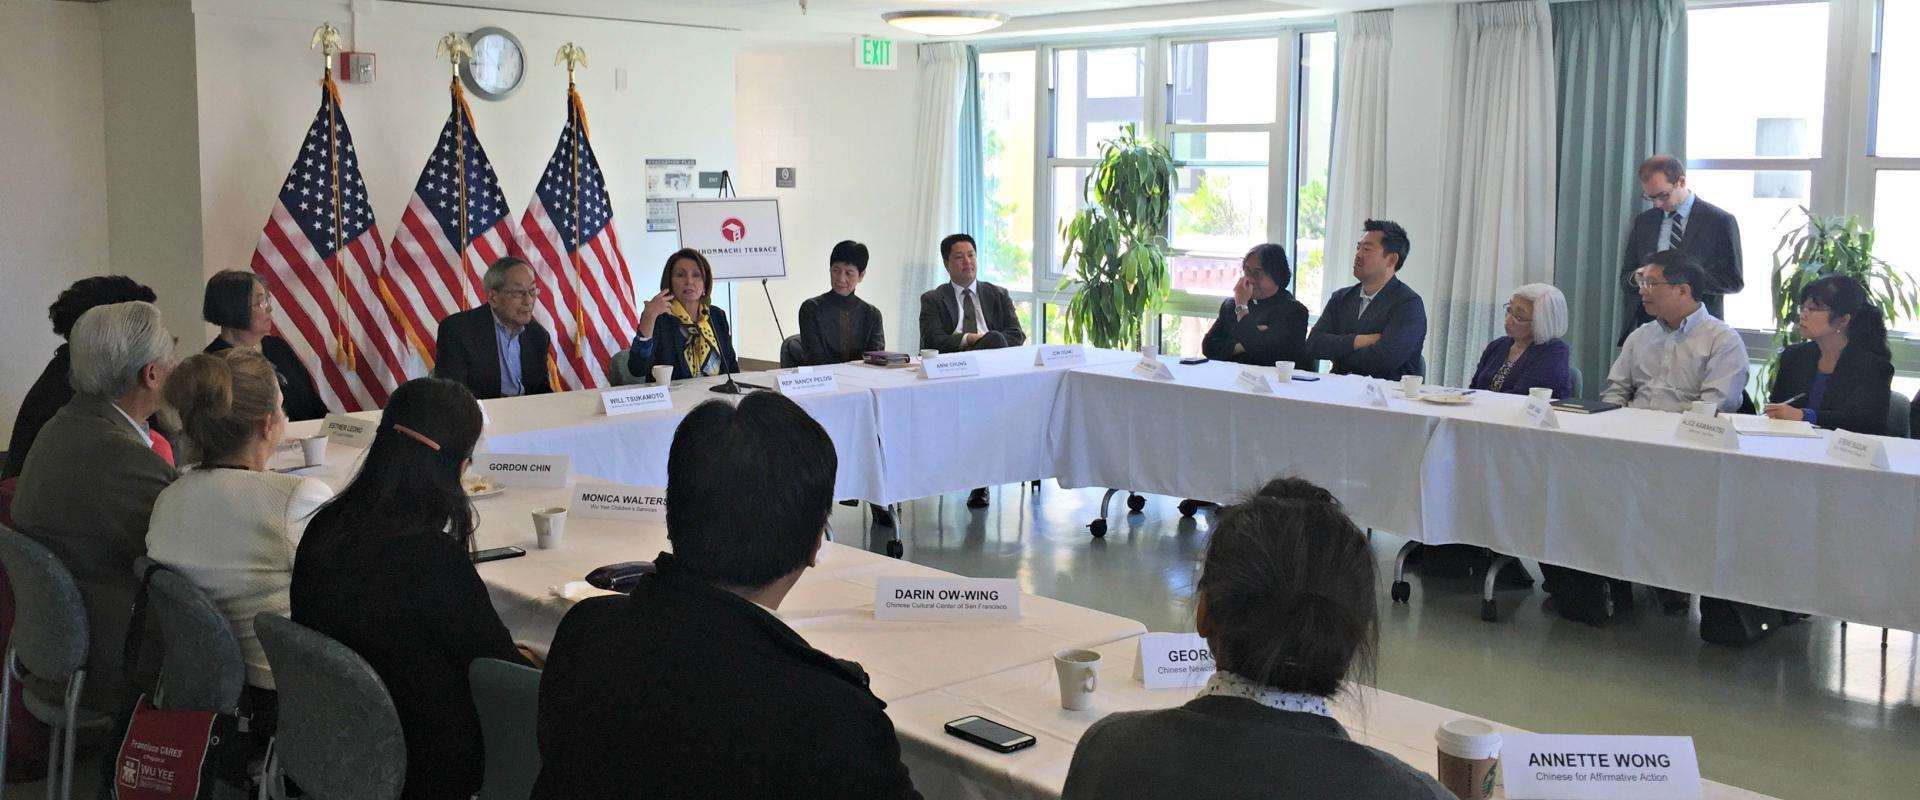 Congresswoman Pelosi participates in a roundtable discussion with local leaders of the Asian-American Pacific Islander Community at Nihonmachi Terrace in Japantown to discuss creating good-paying jobs, affordable housing and comprehensive immigration refo